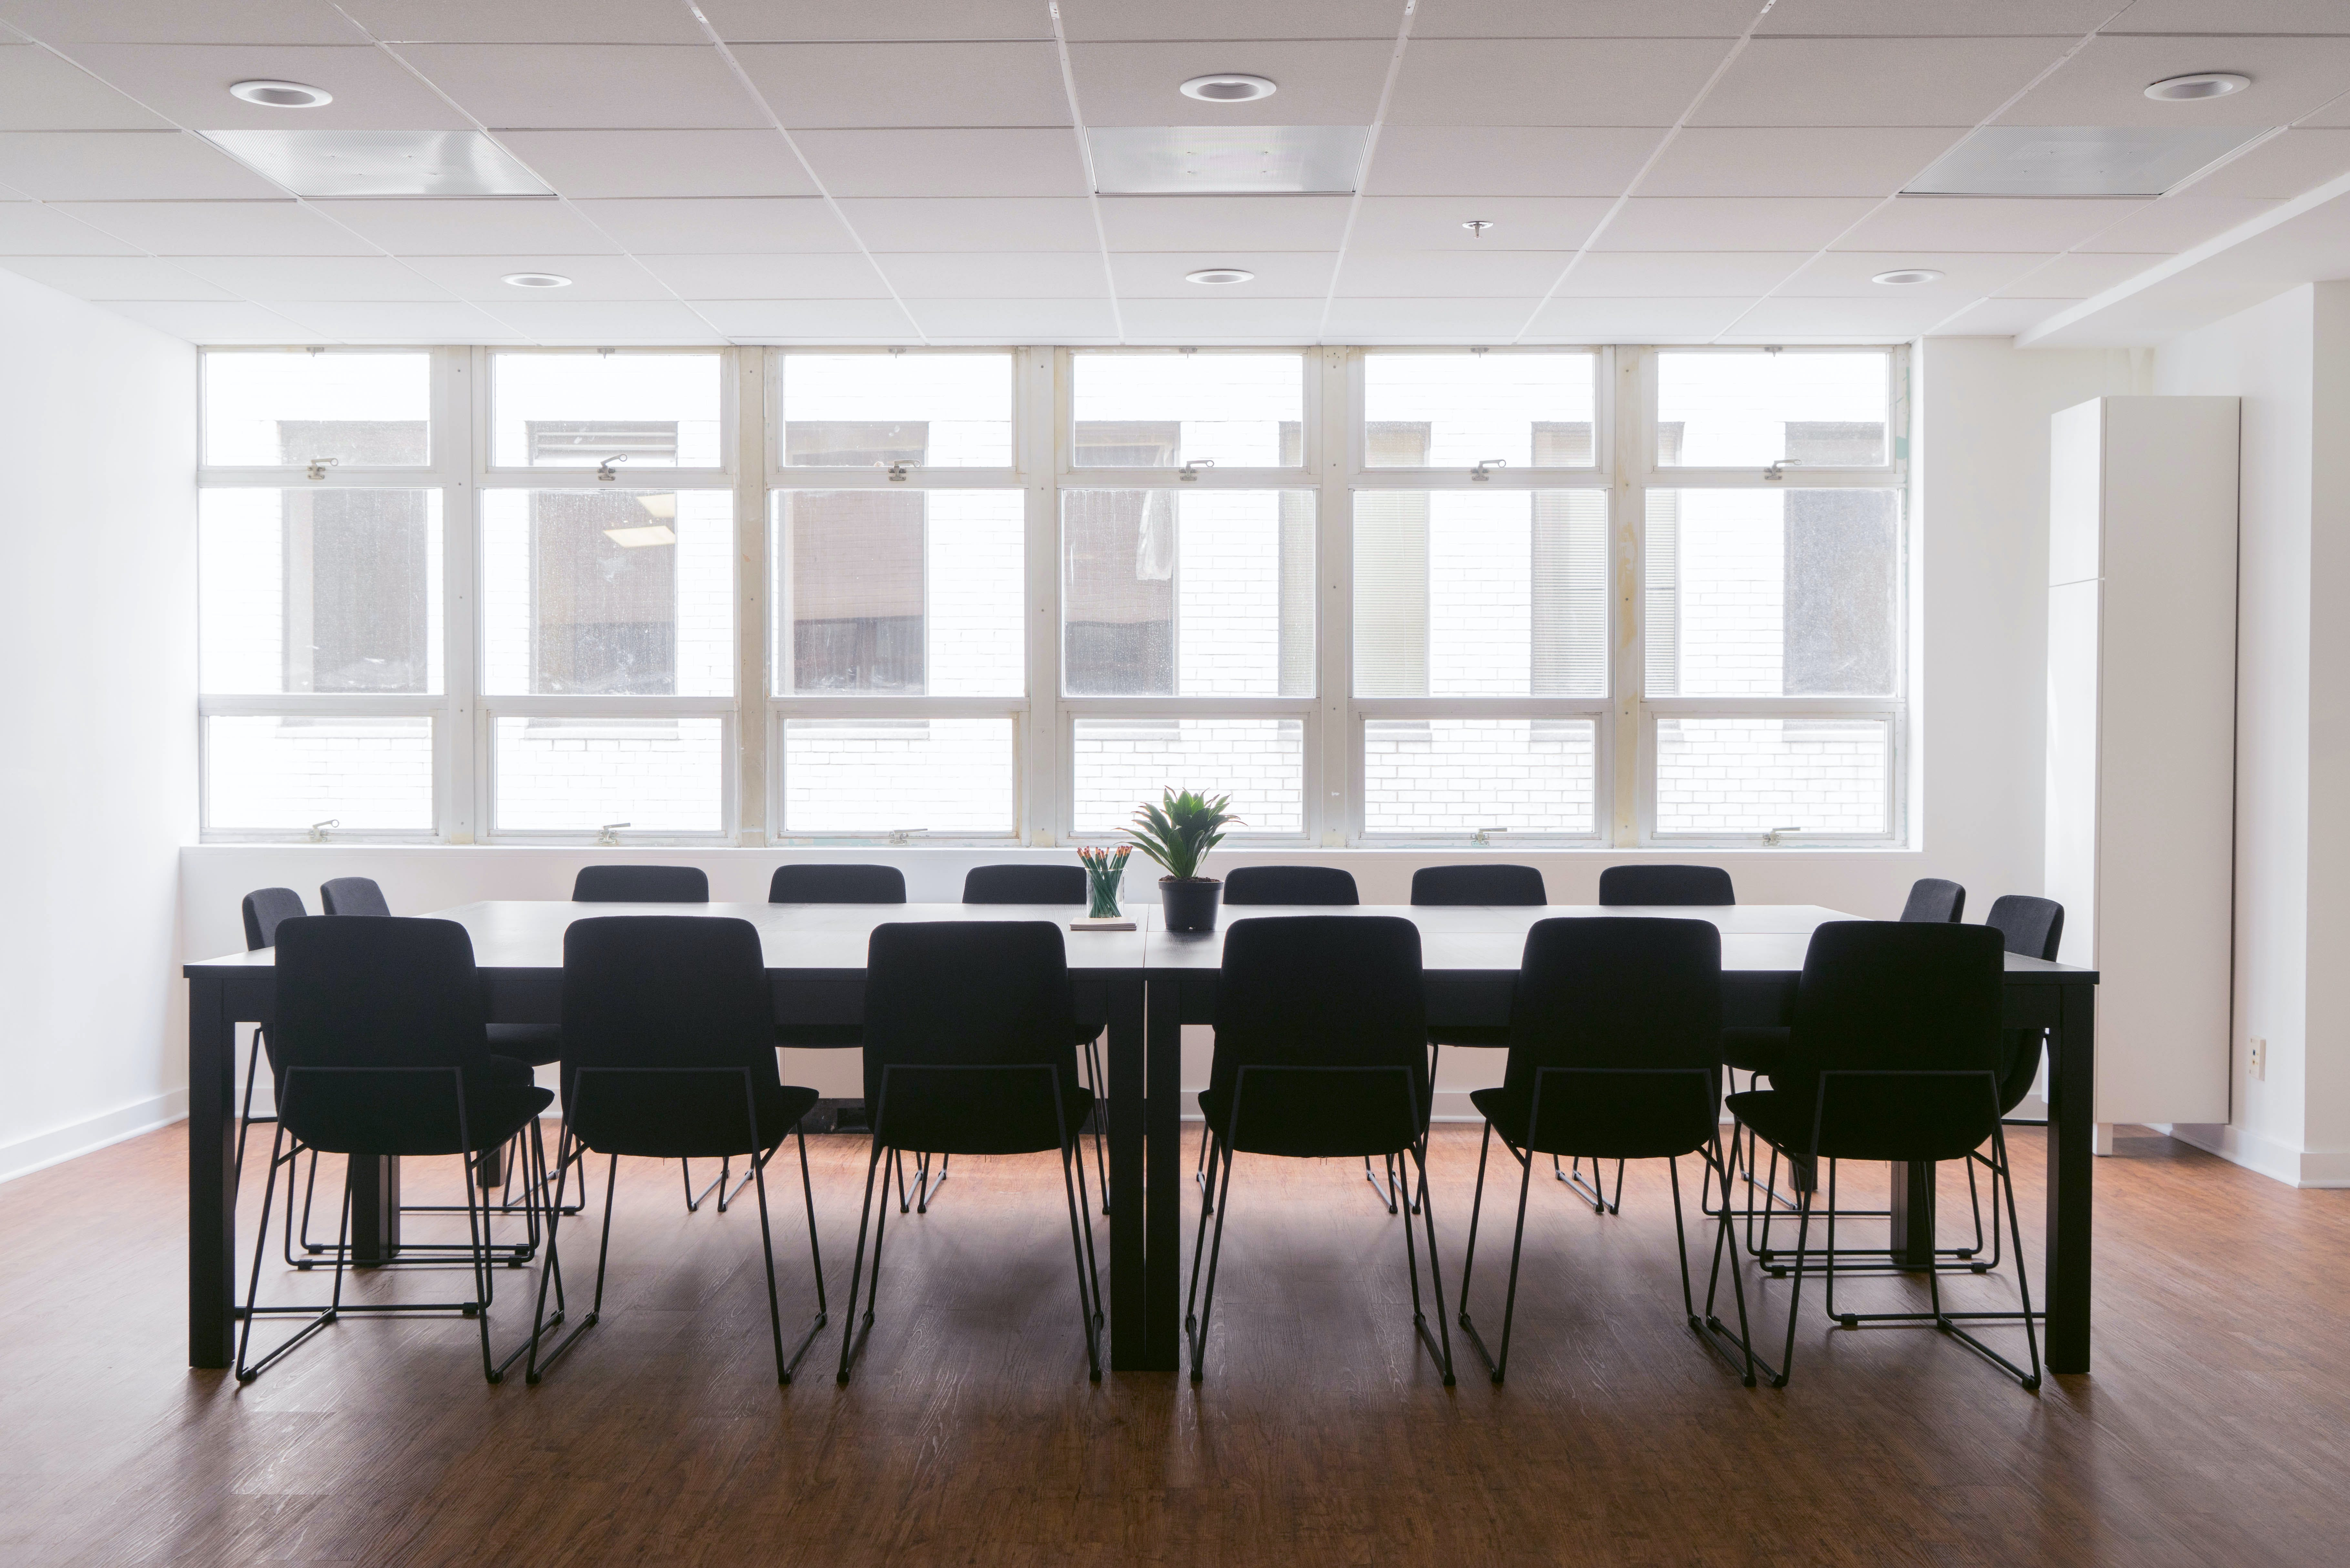 presentation space at 1705 DeSales Street NW